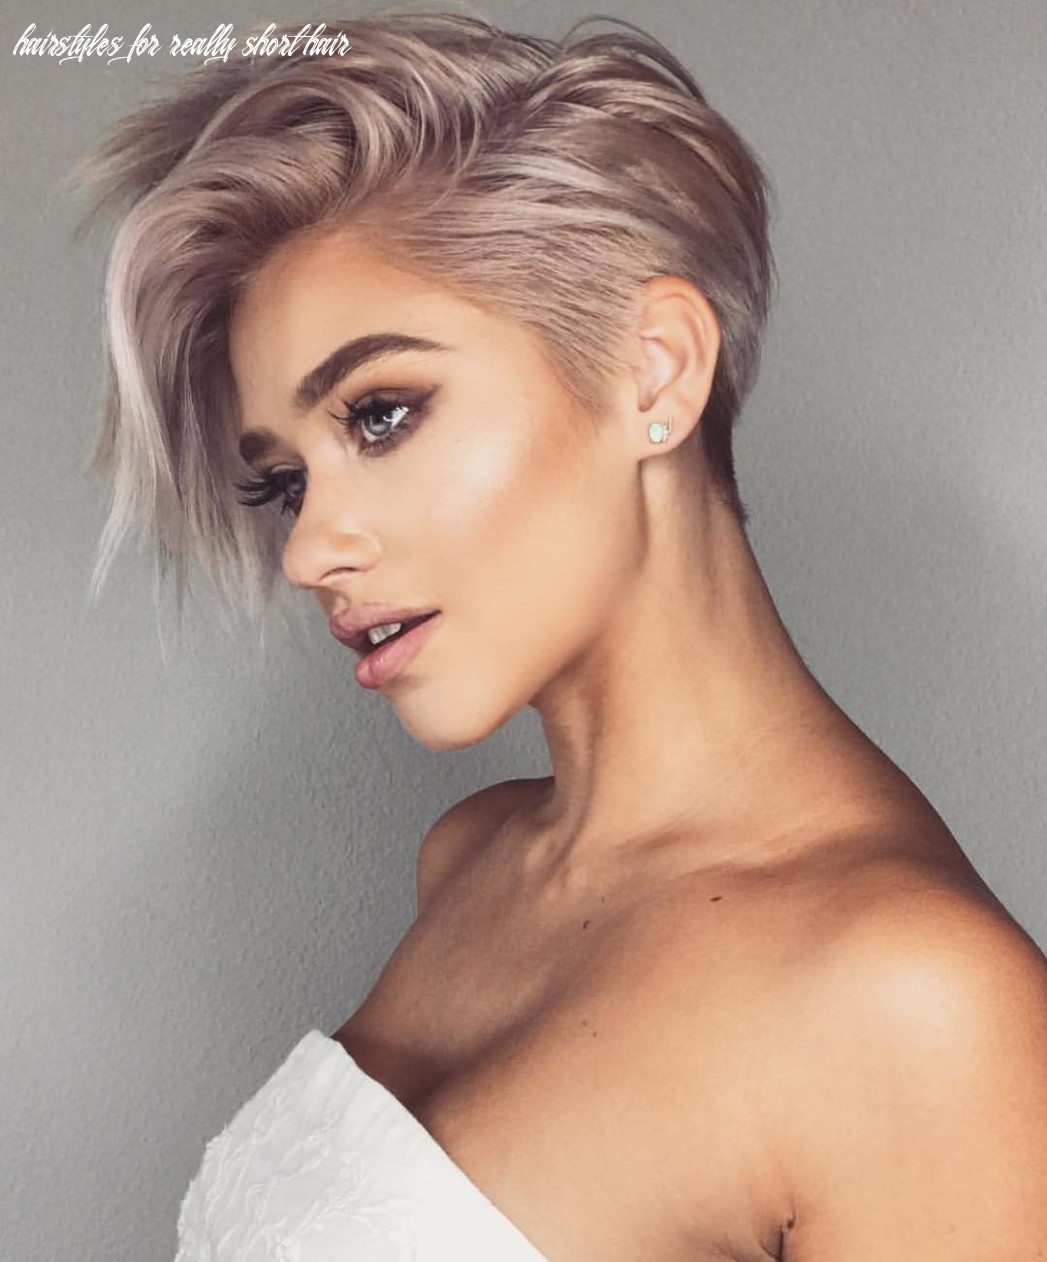 11 trendy very short haircuts for female, cool short hair styles 11 hairstyles for really short hair